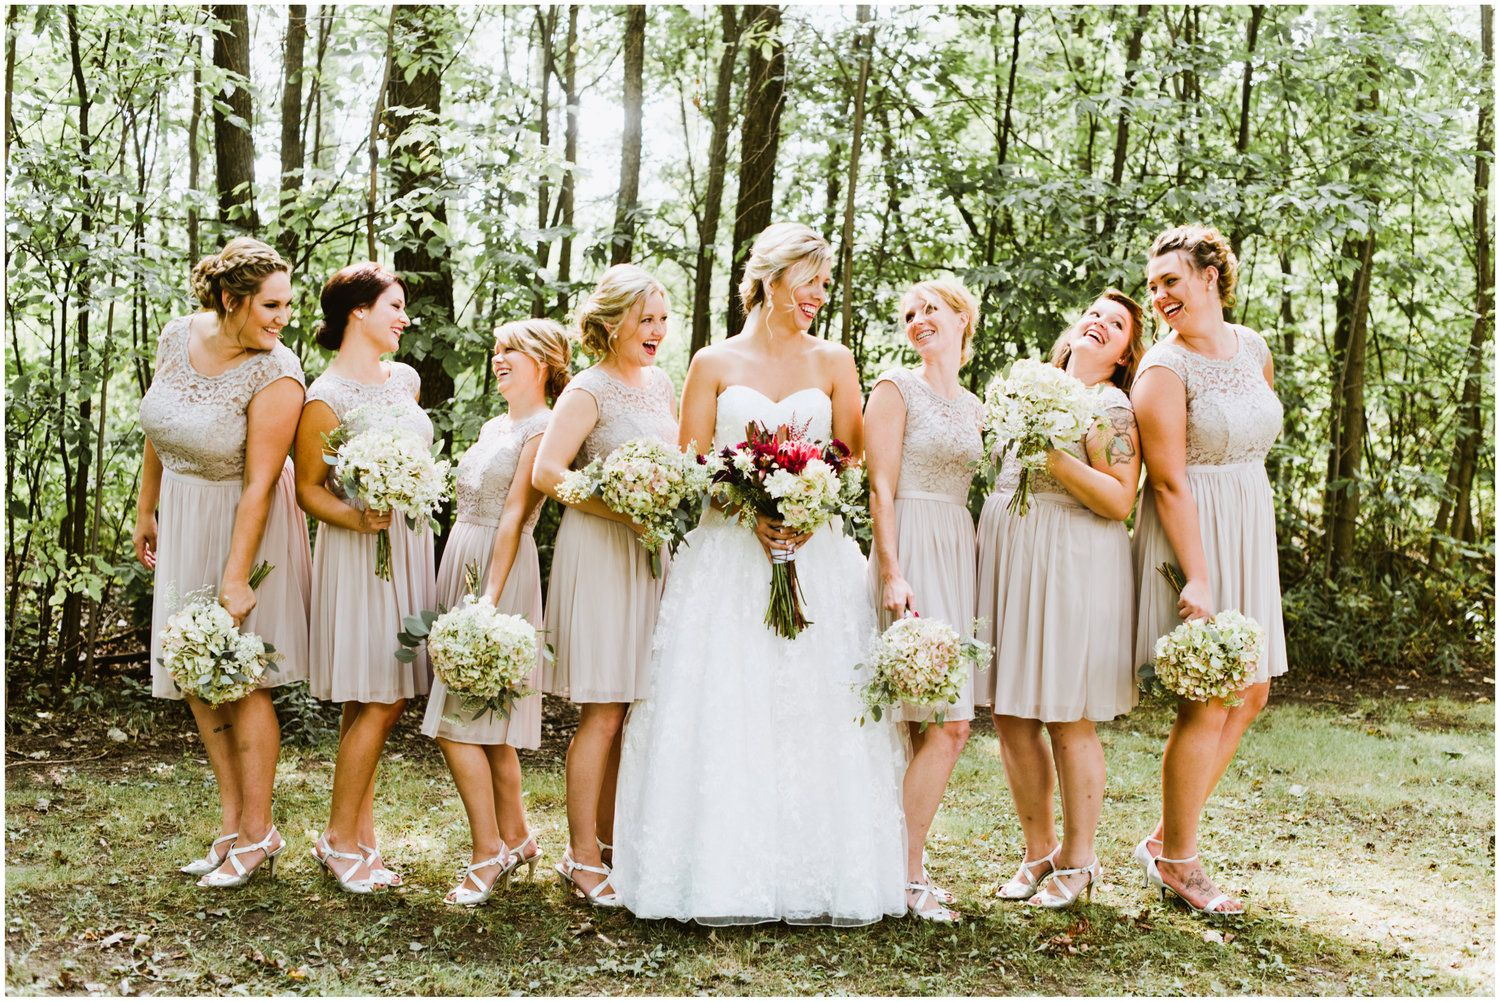 Davids bridal bridesmaids in short lace and mesh bridesmaid davids bridal bridesmaids in short lace and mesh bridesmaid dresses by davids bridal in biscotti ombrellifo Images